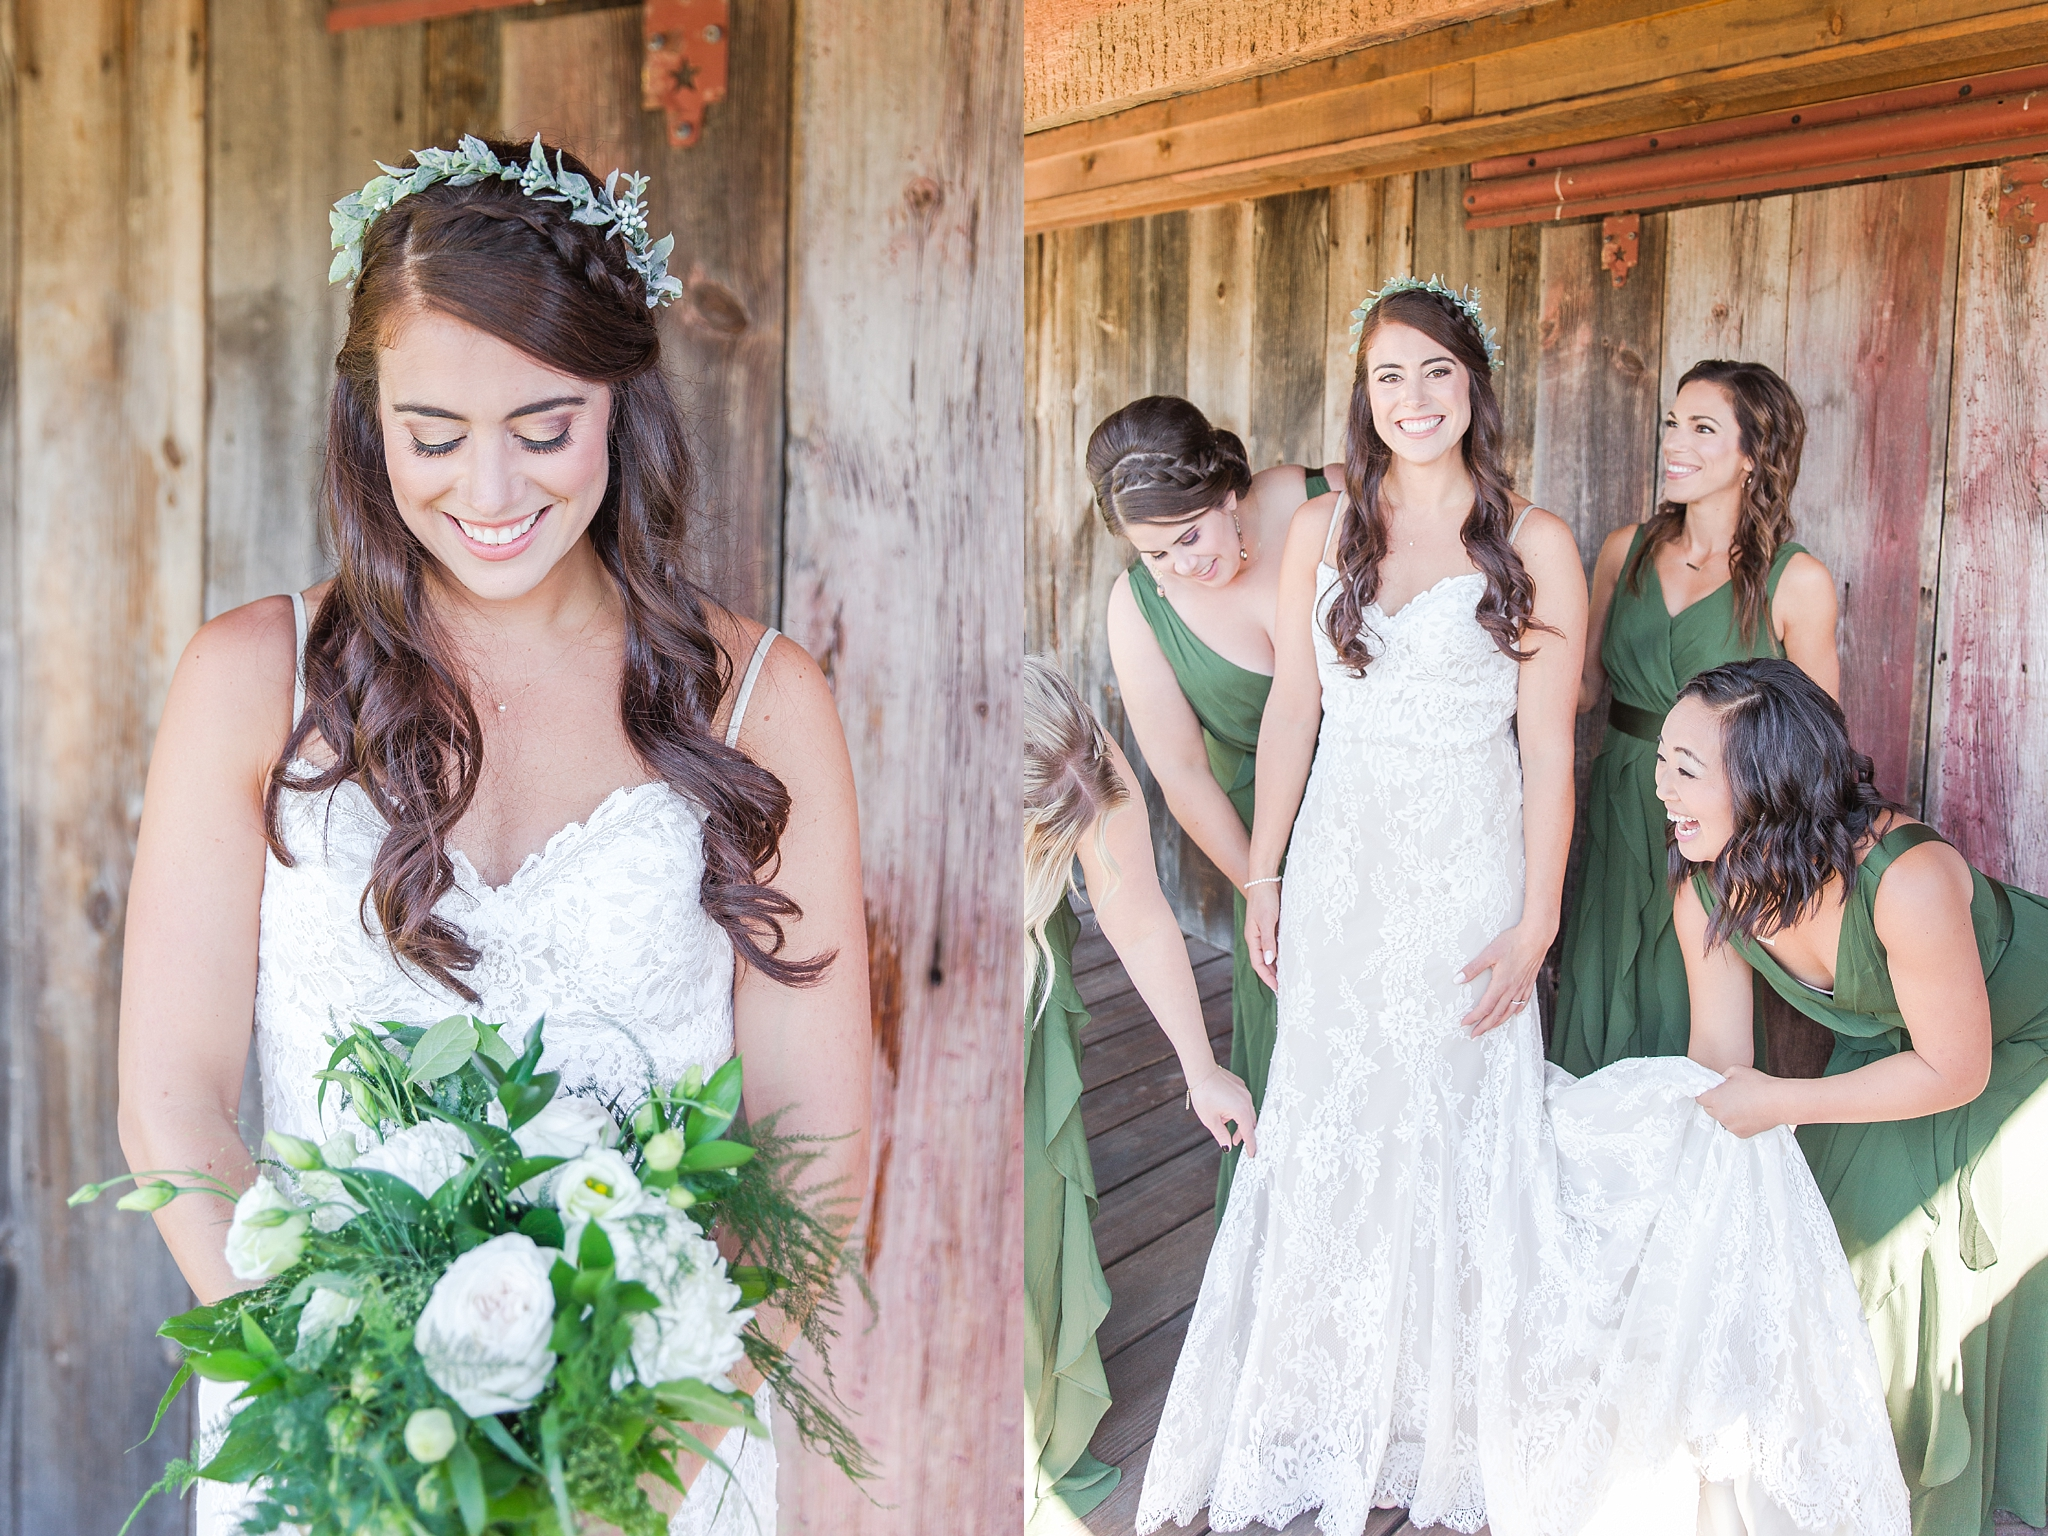 natural-rustic-wedding-photos-at-frutig-farms-the-valley-in-ann-arbor-michigan-by-courtney-carolyn-photography_0013.jpg